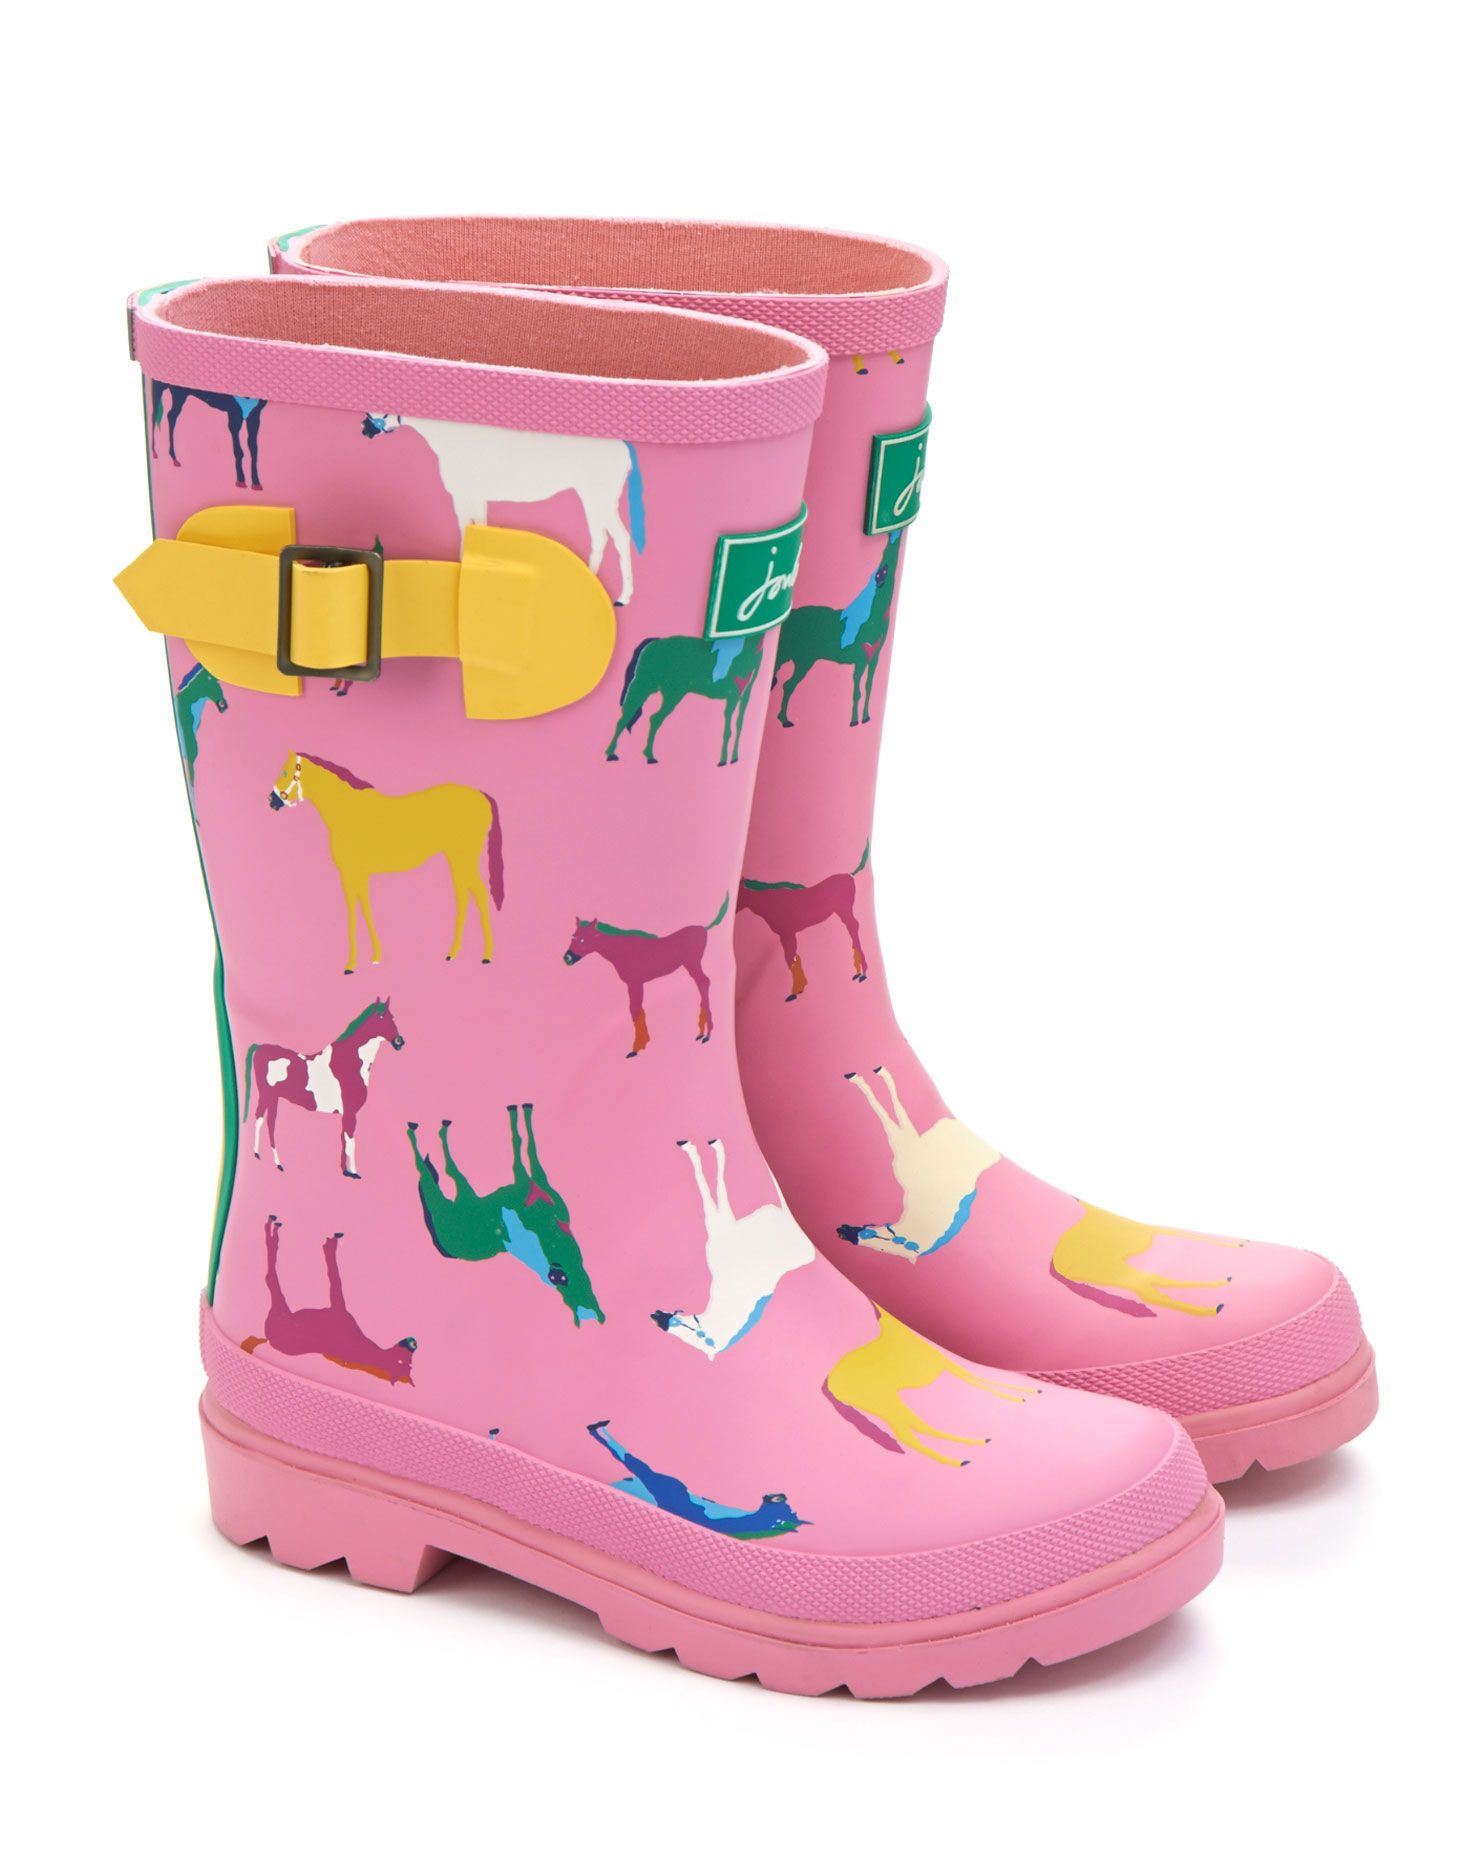 1000  images about RAIN BOOTS on Pinterest | Garden crafts, Spring ...